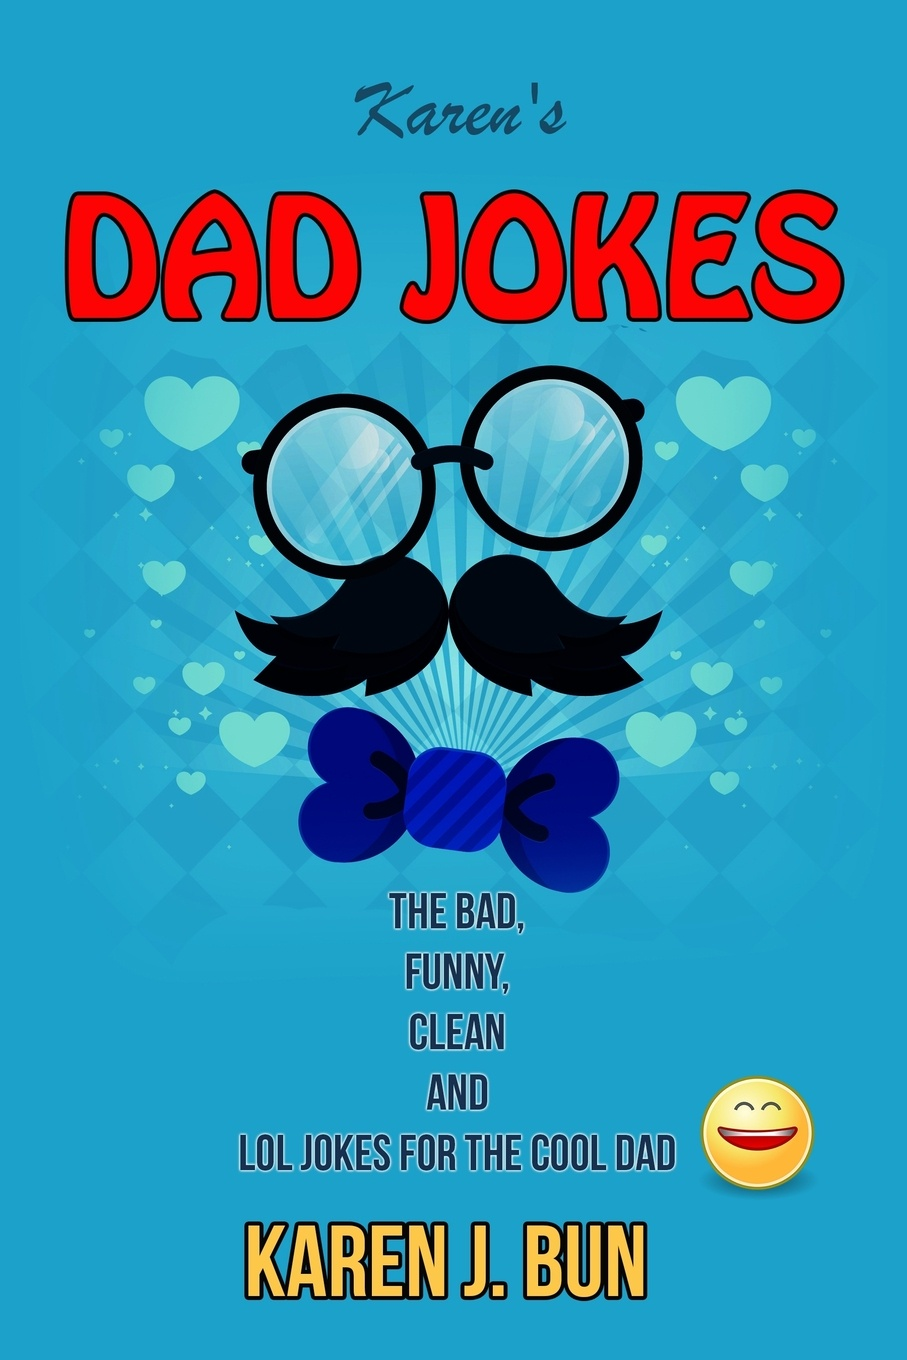 Karen J. Bun Karen's Dad Jokes. The Bad, Funny, Clean And LOL Jokes For The Cool Dad the bumper book of very silly jokes